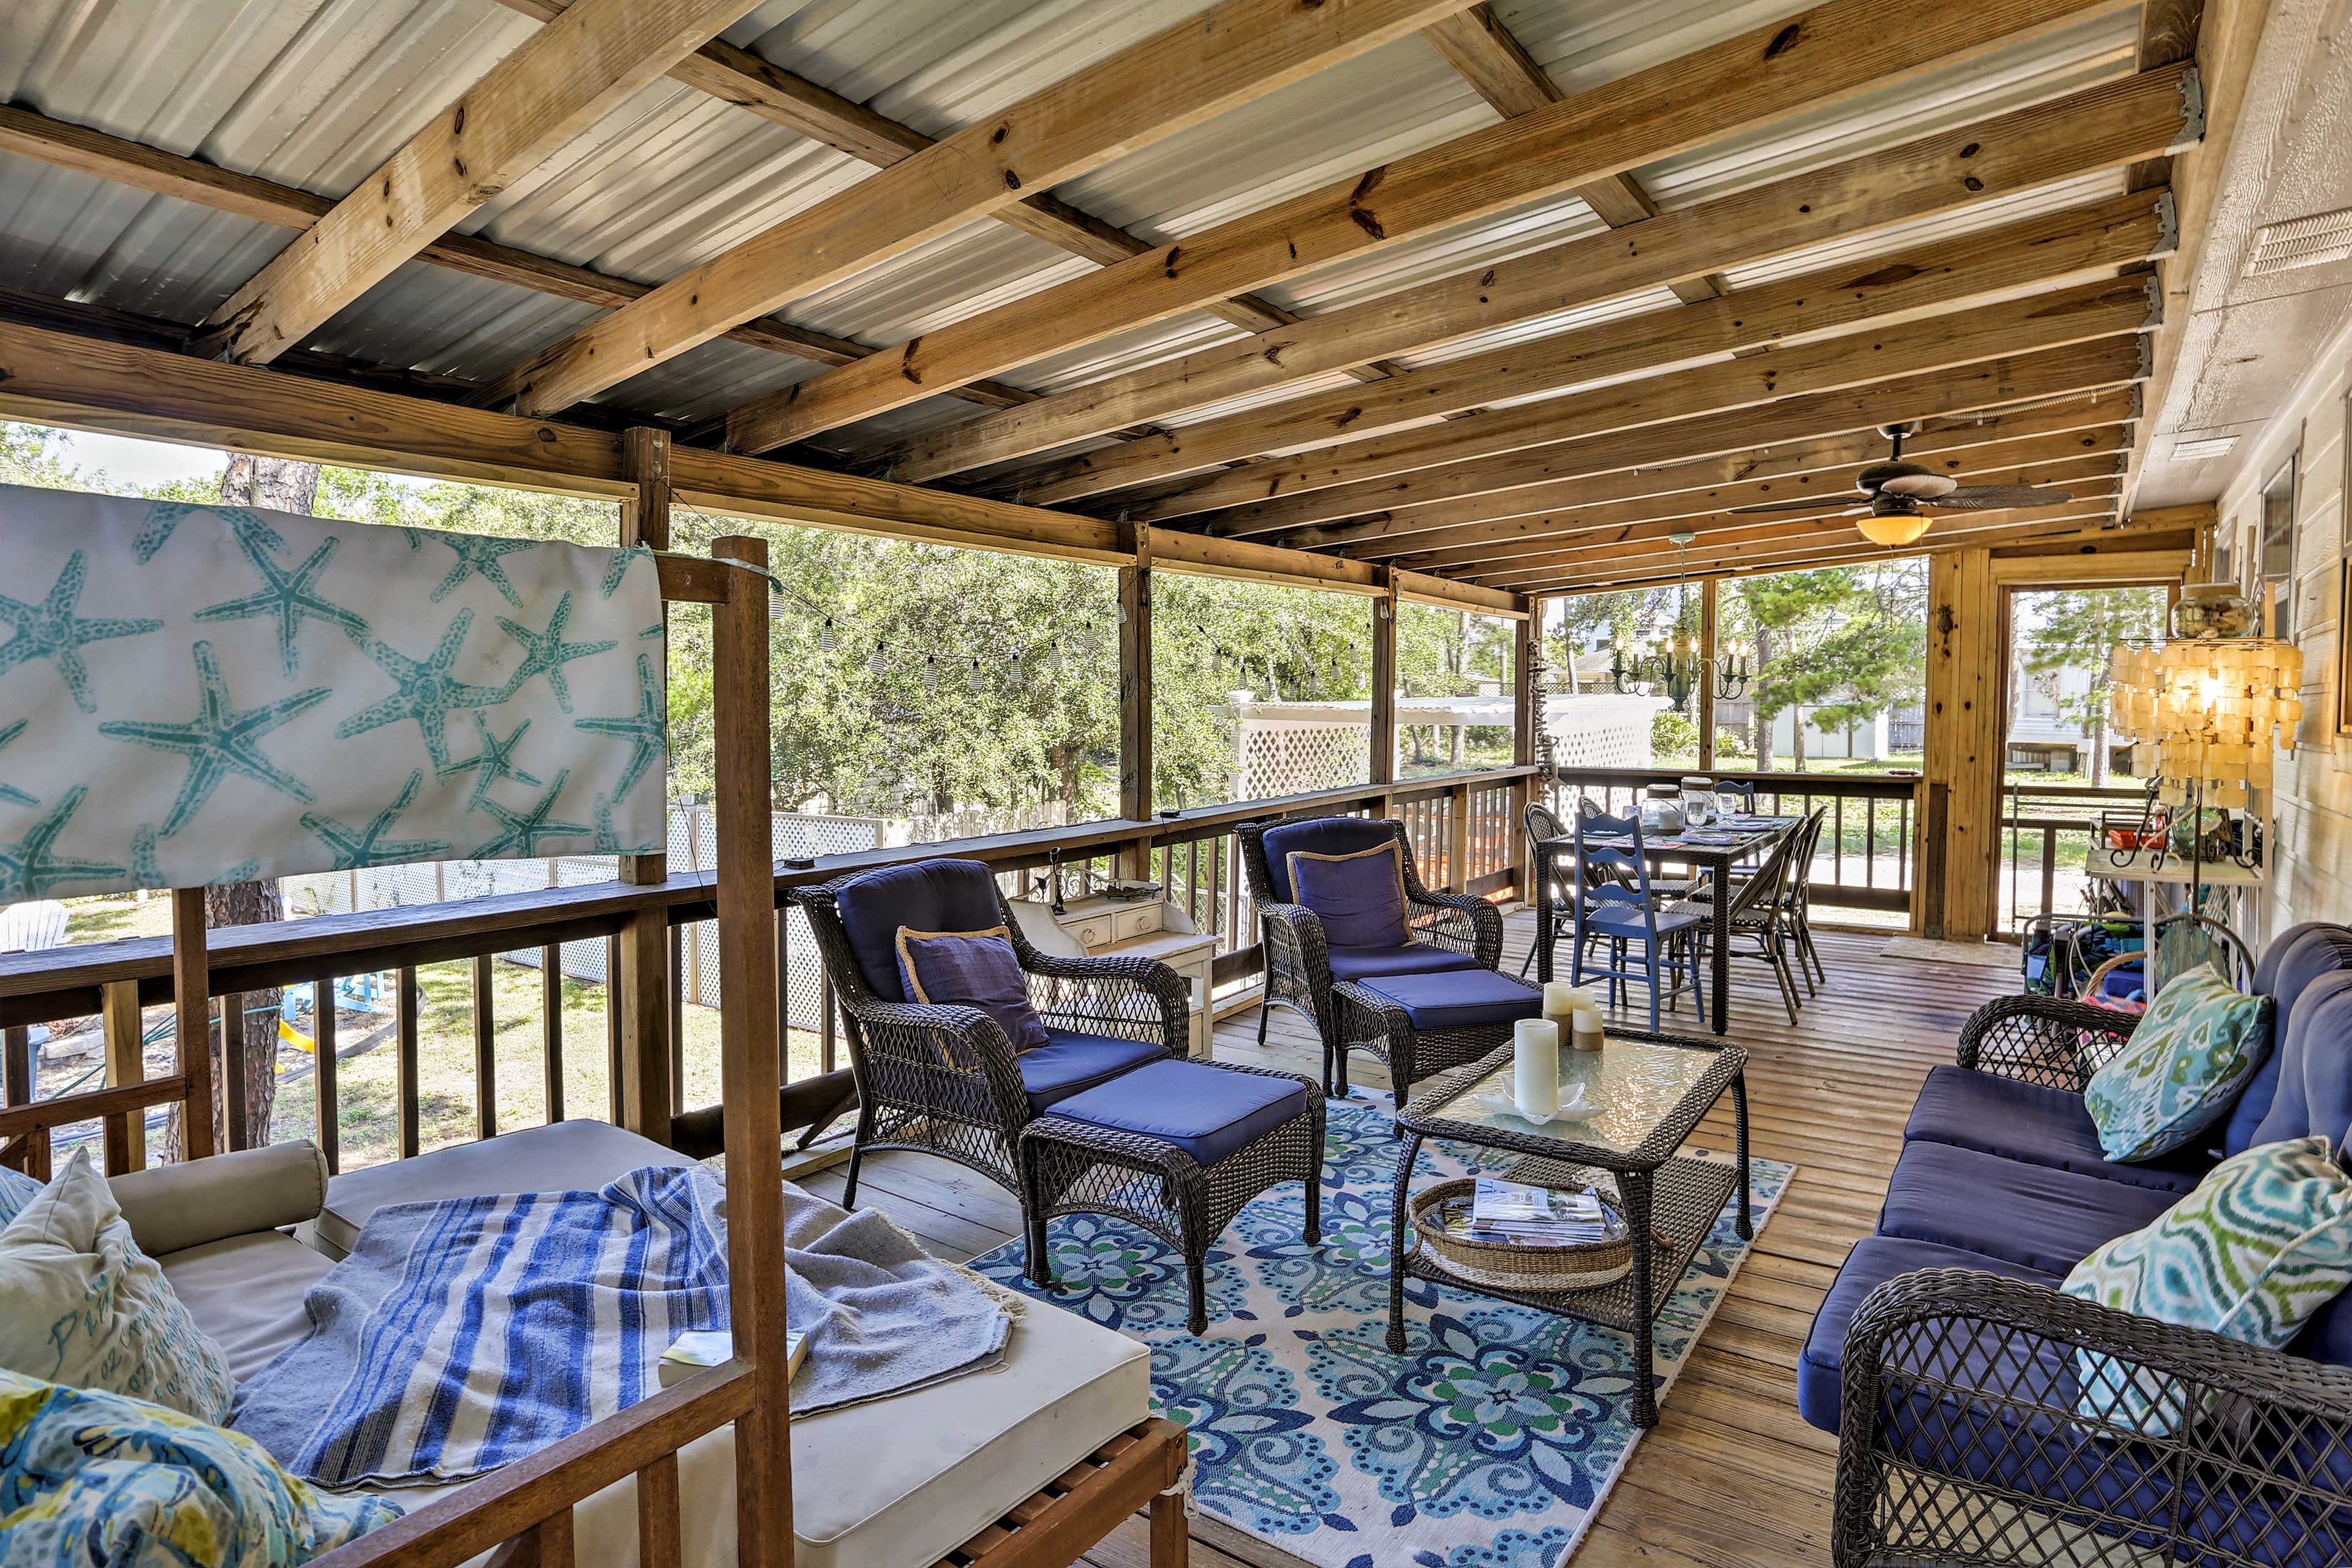 Lounge on the patio and enjoy the breeze.